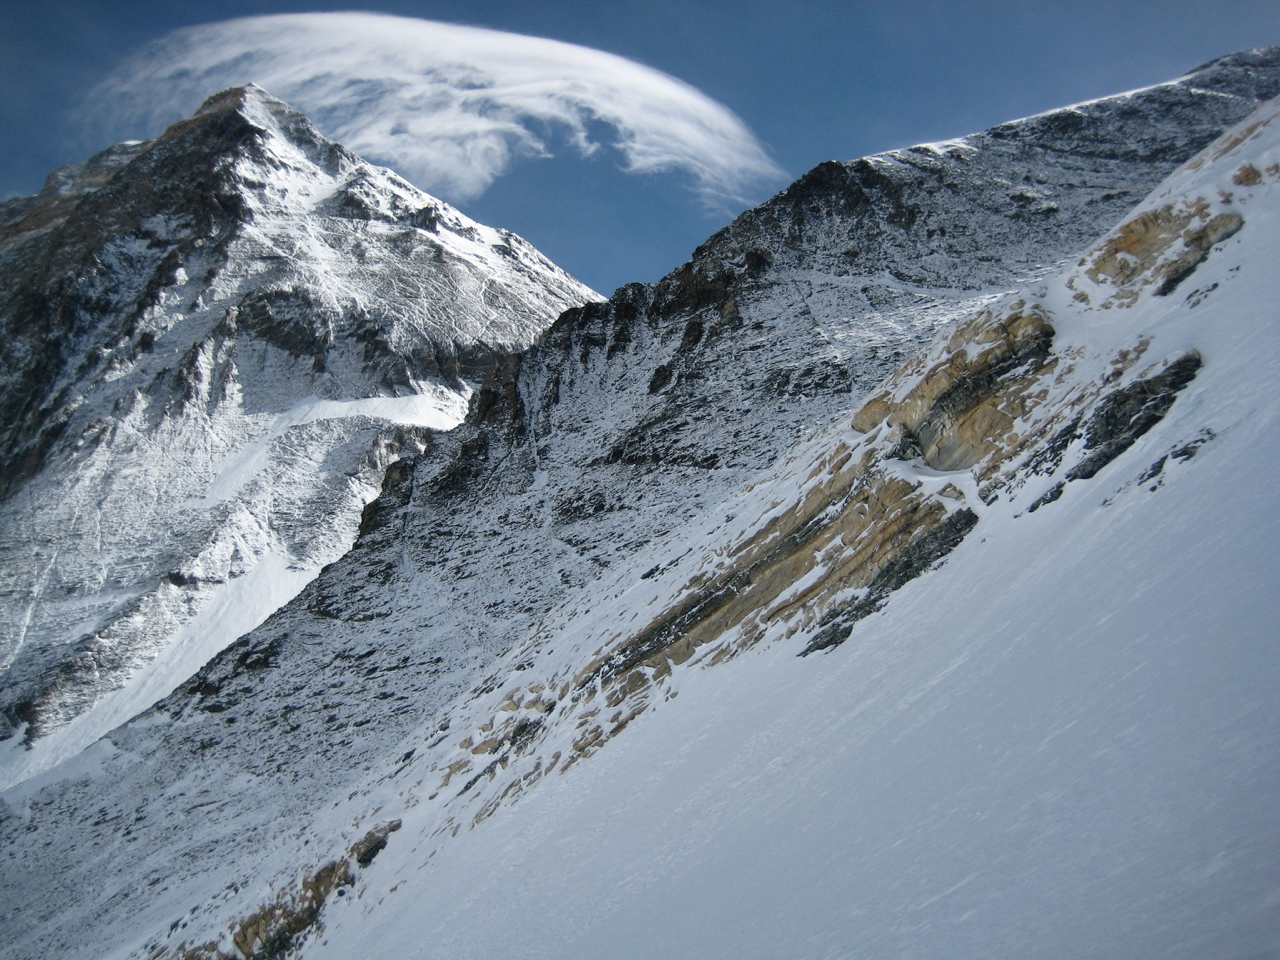 Mount Everest from the Lhotse Face